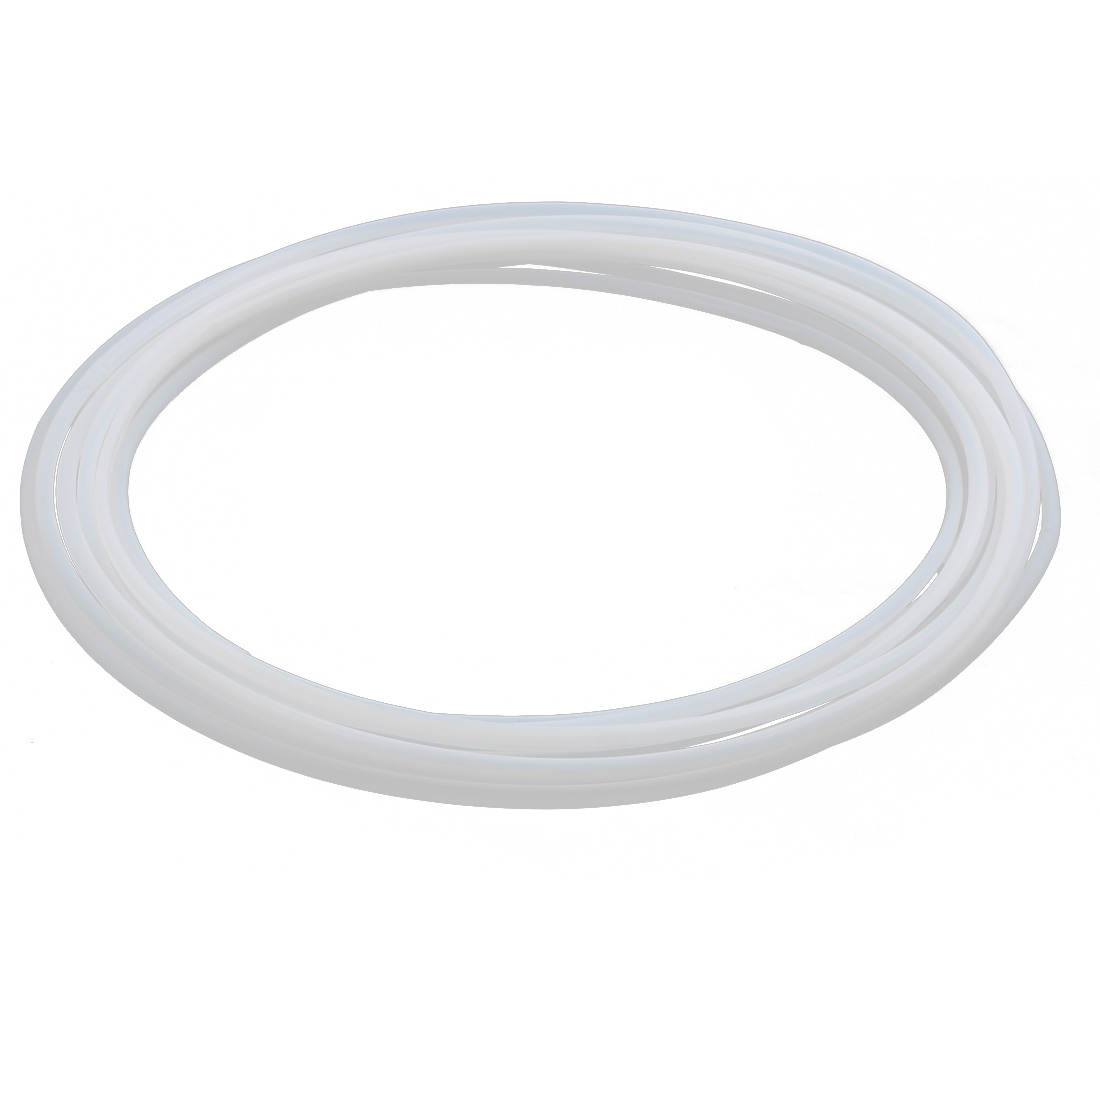 6.54mmx5.94mm PTFE Resistant High Temperature Transparent Tubing 3Meters 9.84Ft